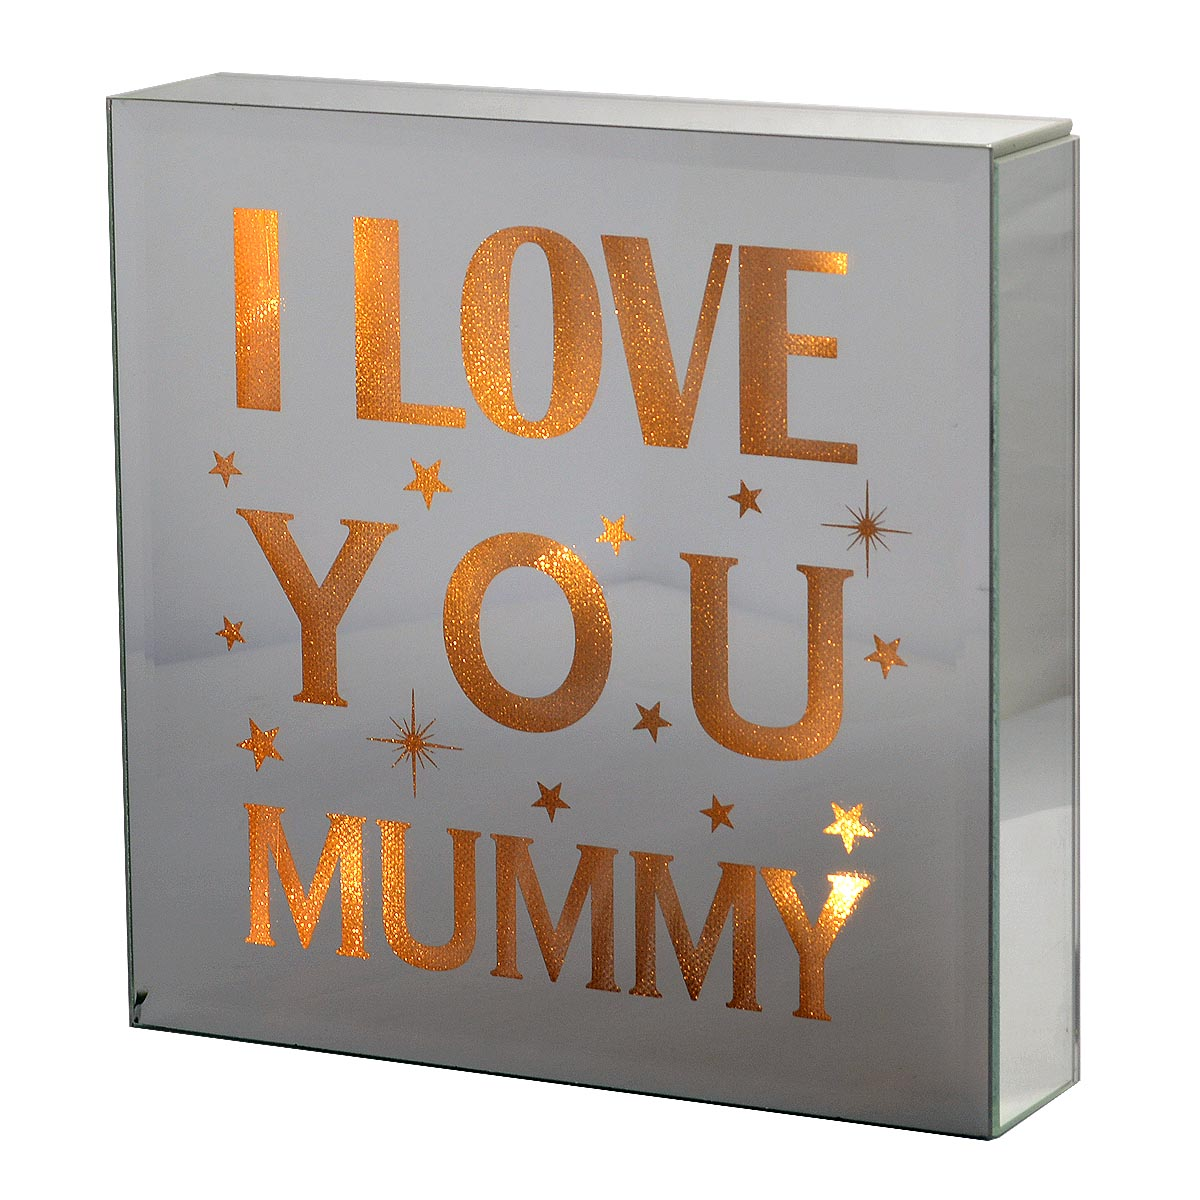 I Love You: I Love You Mummy Silver Glass Mirror Light Up Box Wall